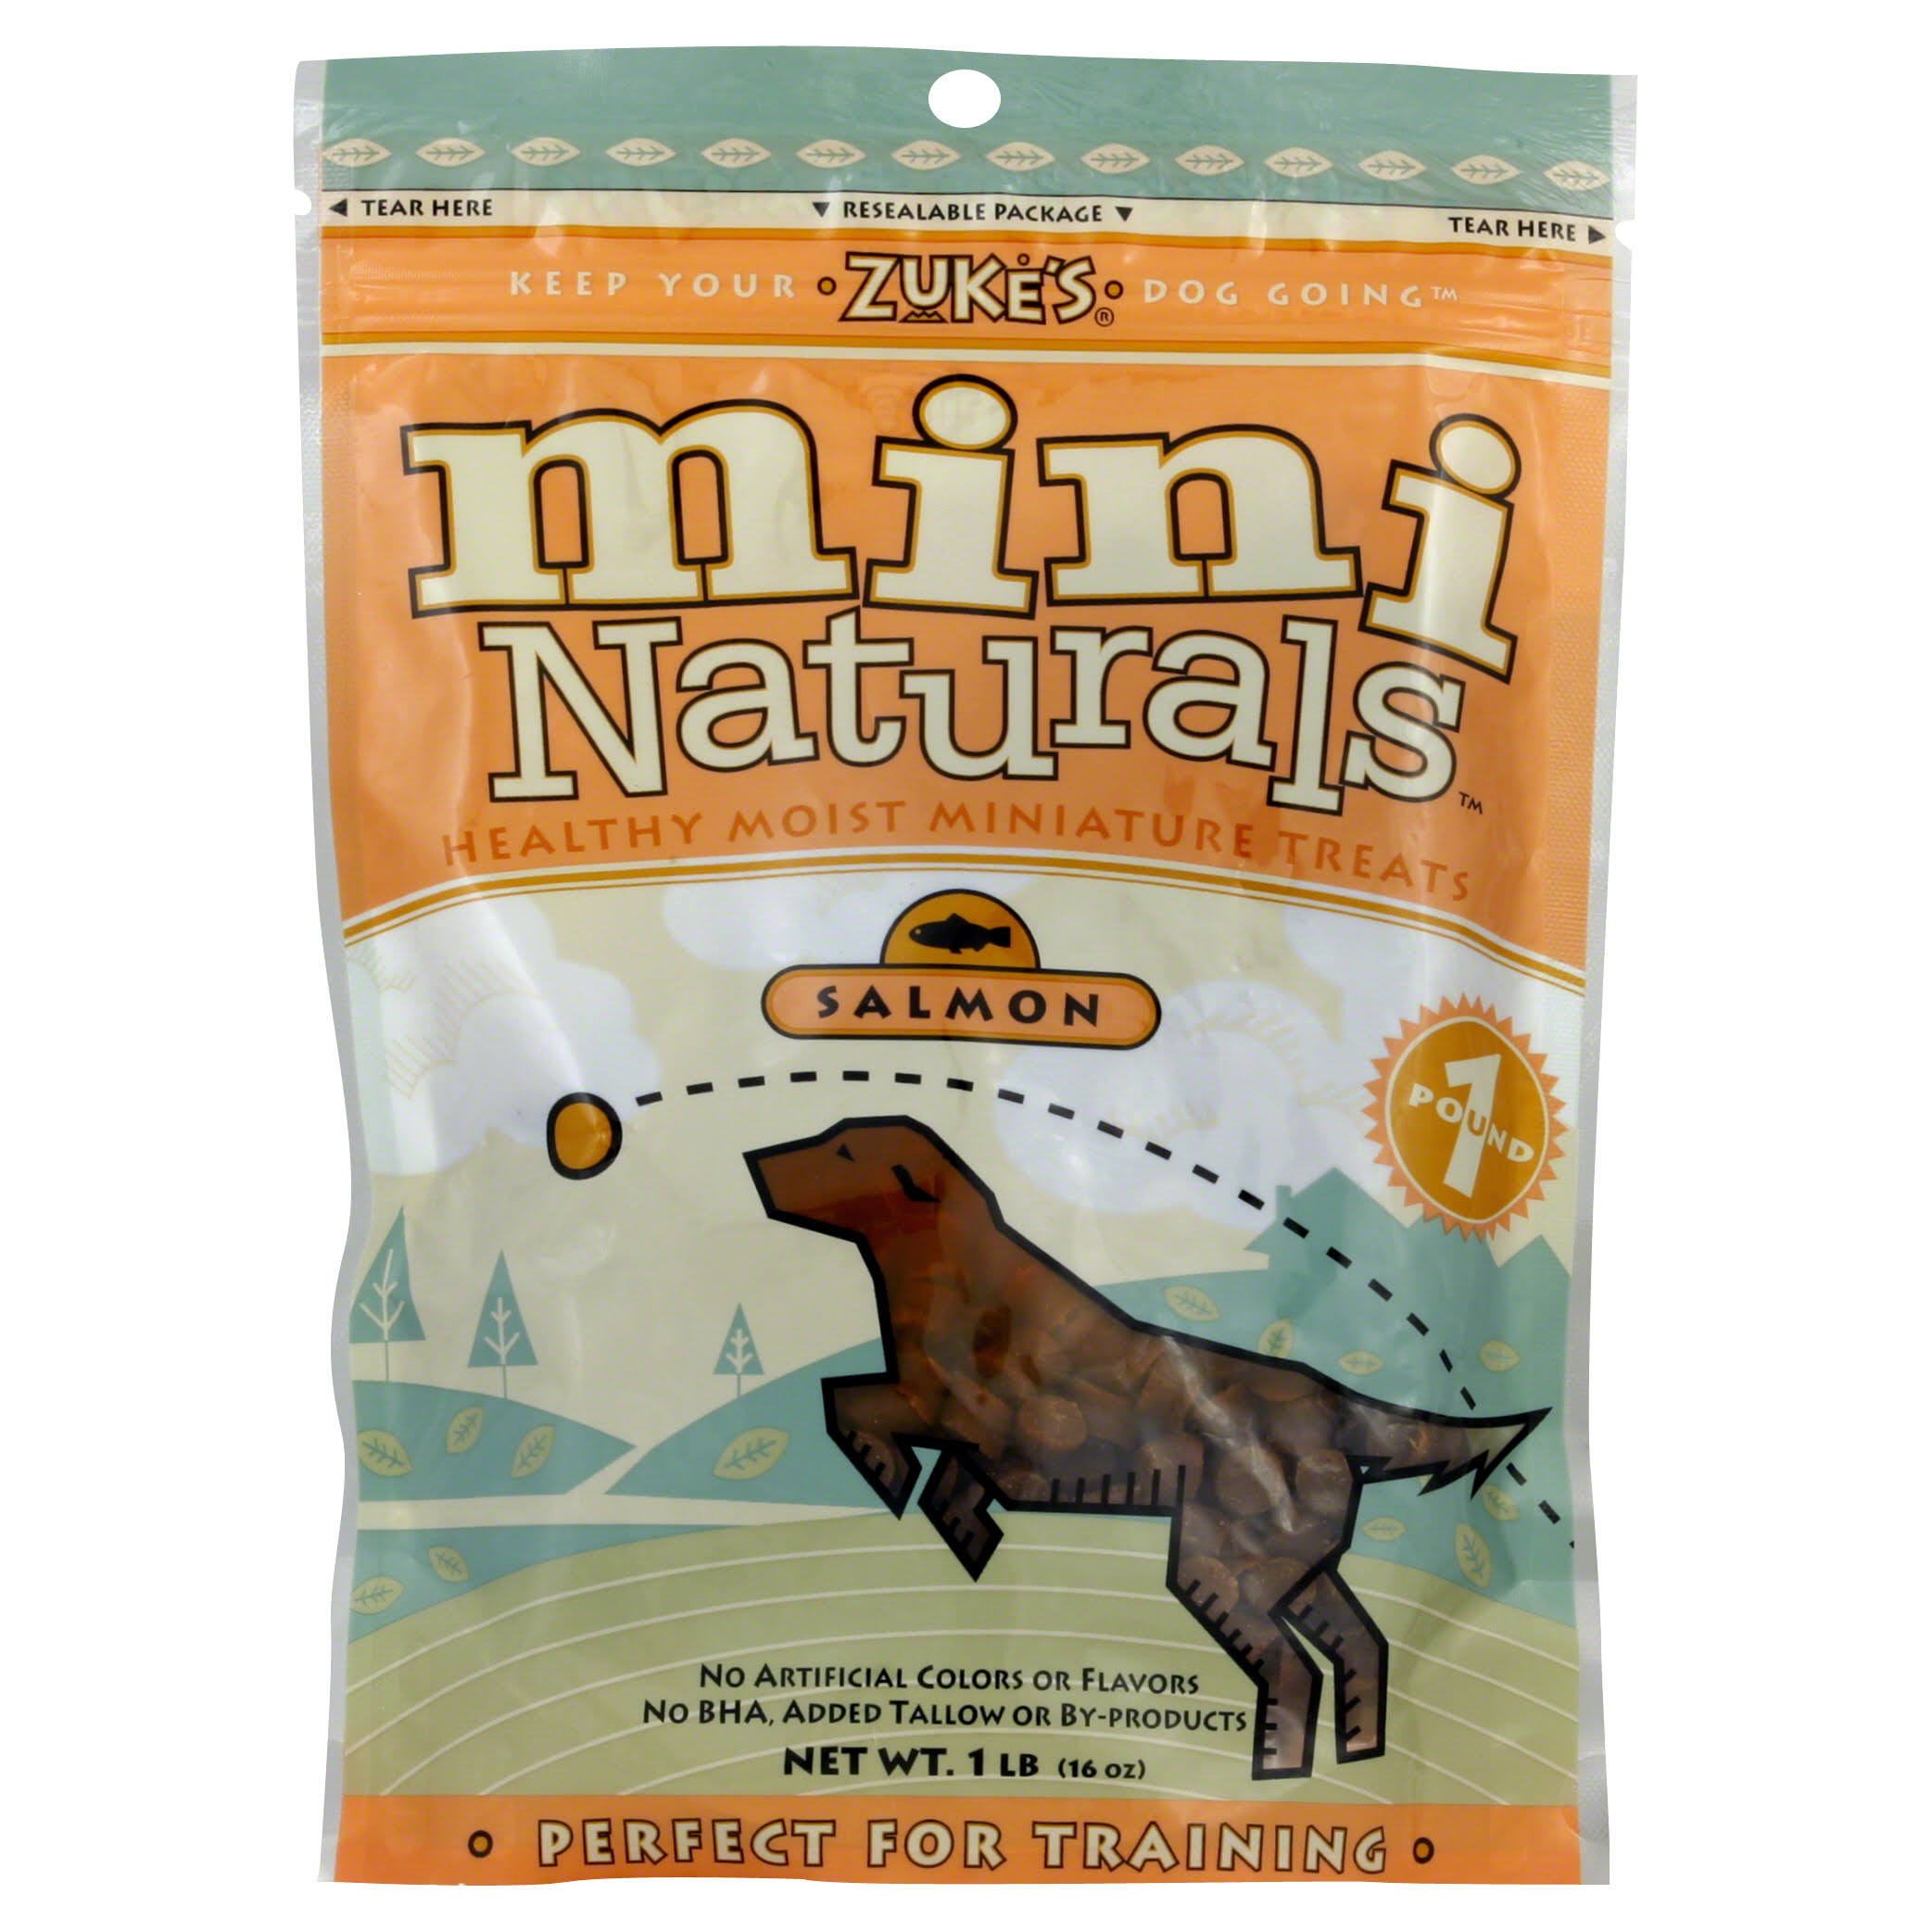 Zukes Mini Naturals Healthy Miniature Dog Treats - Salmon, 16oz